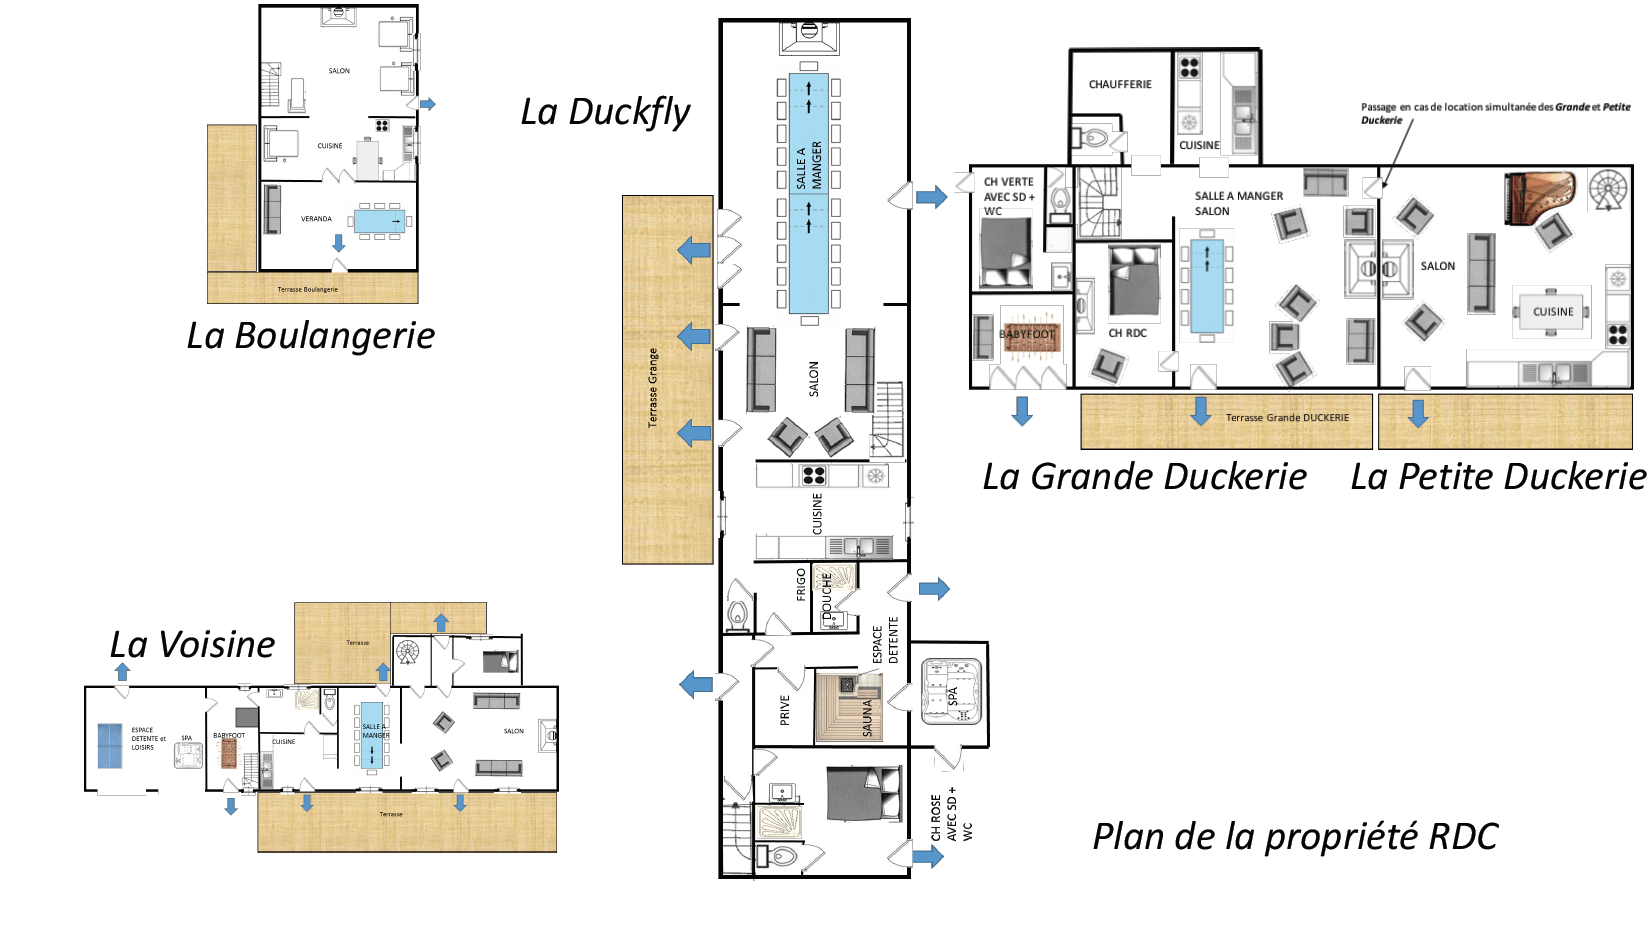 Plan la Duckerie - GITE LA DUCKERIE - Location de Gite La Clef Decamp - Laclefdecamp.fr